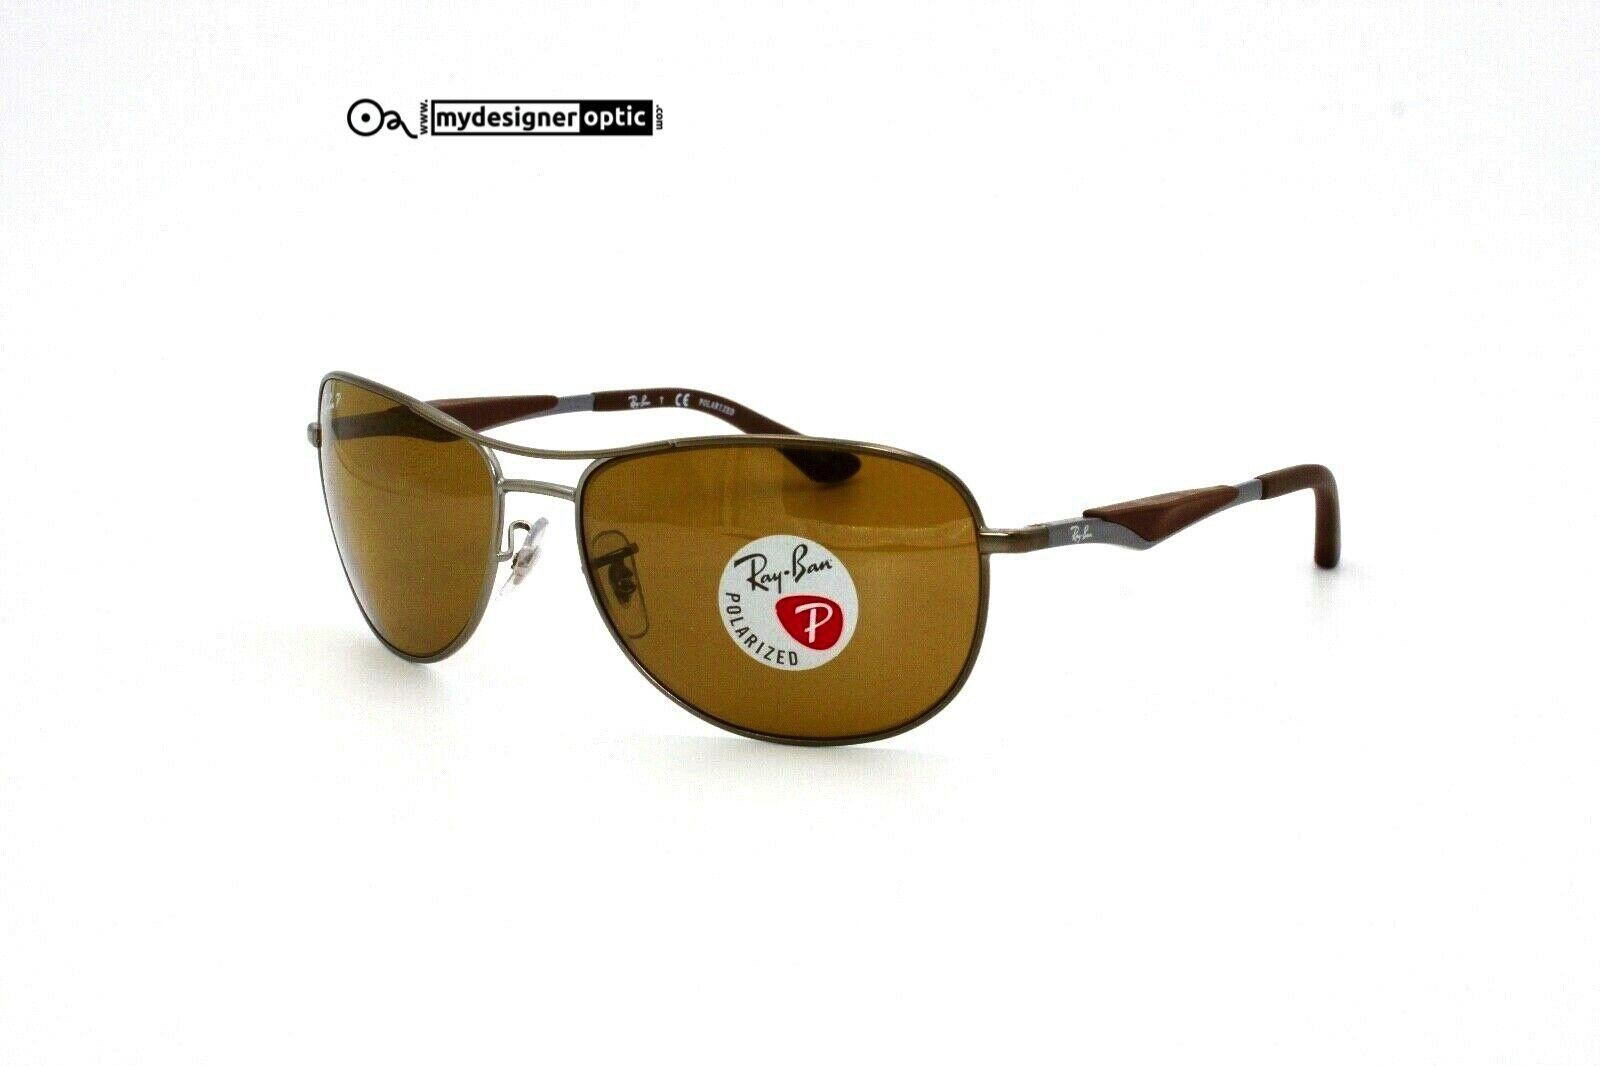 Ray Ban Sunglasses RB3519 029/83 59 15 135 3P Polarized - Mydesigneroptic